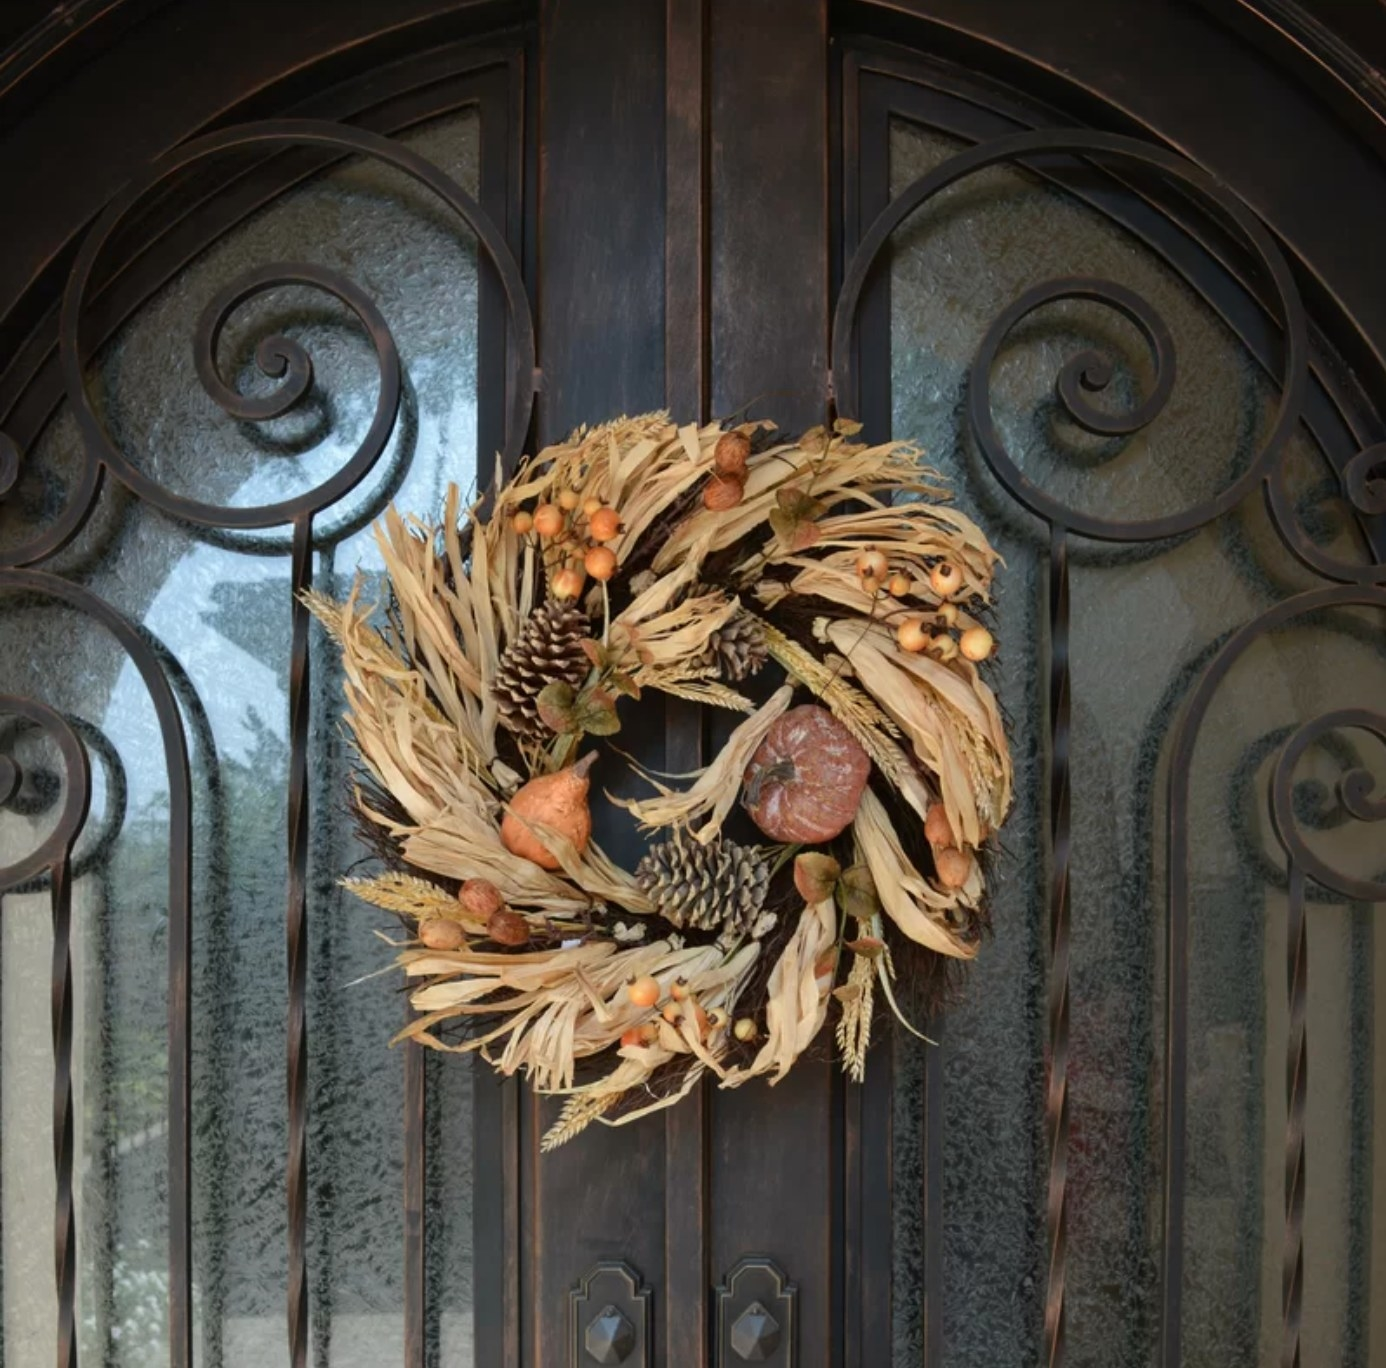 The seasonal wreath with pinecones and pumpkins on a double door